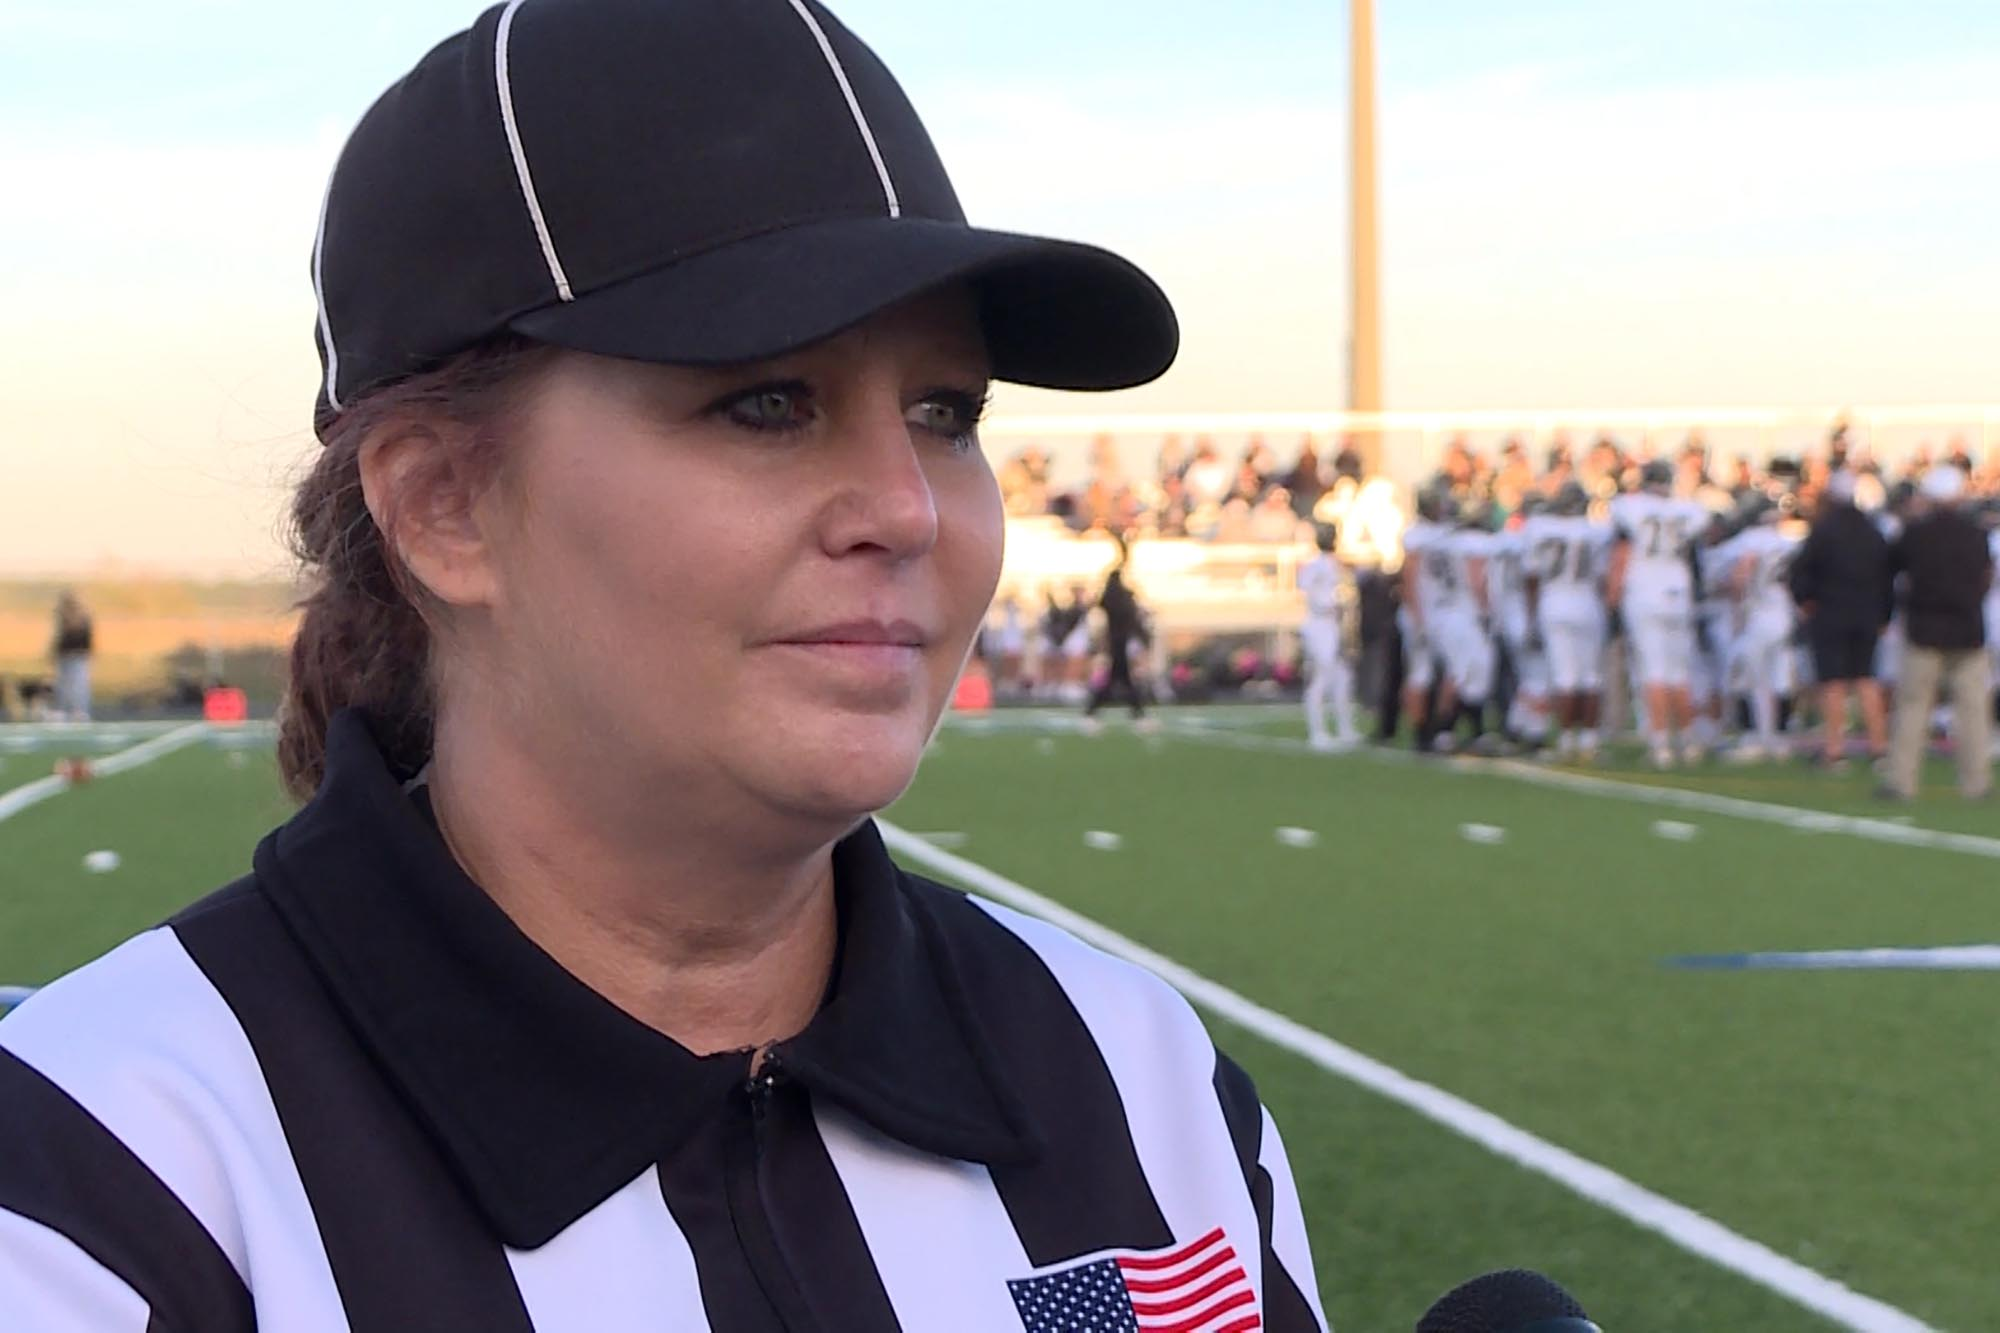 Holly McCammack is one of about a dozen licensed football officials, and usually is on the field officiating with her husband.